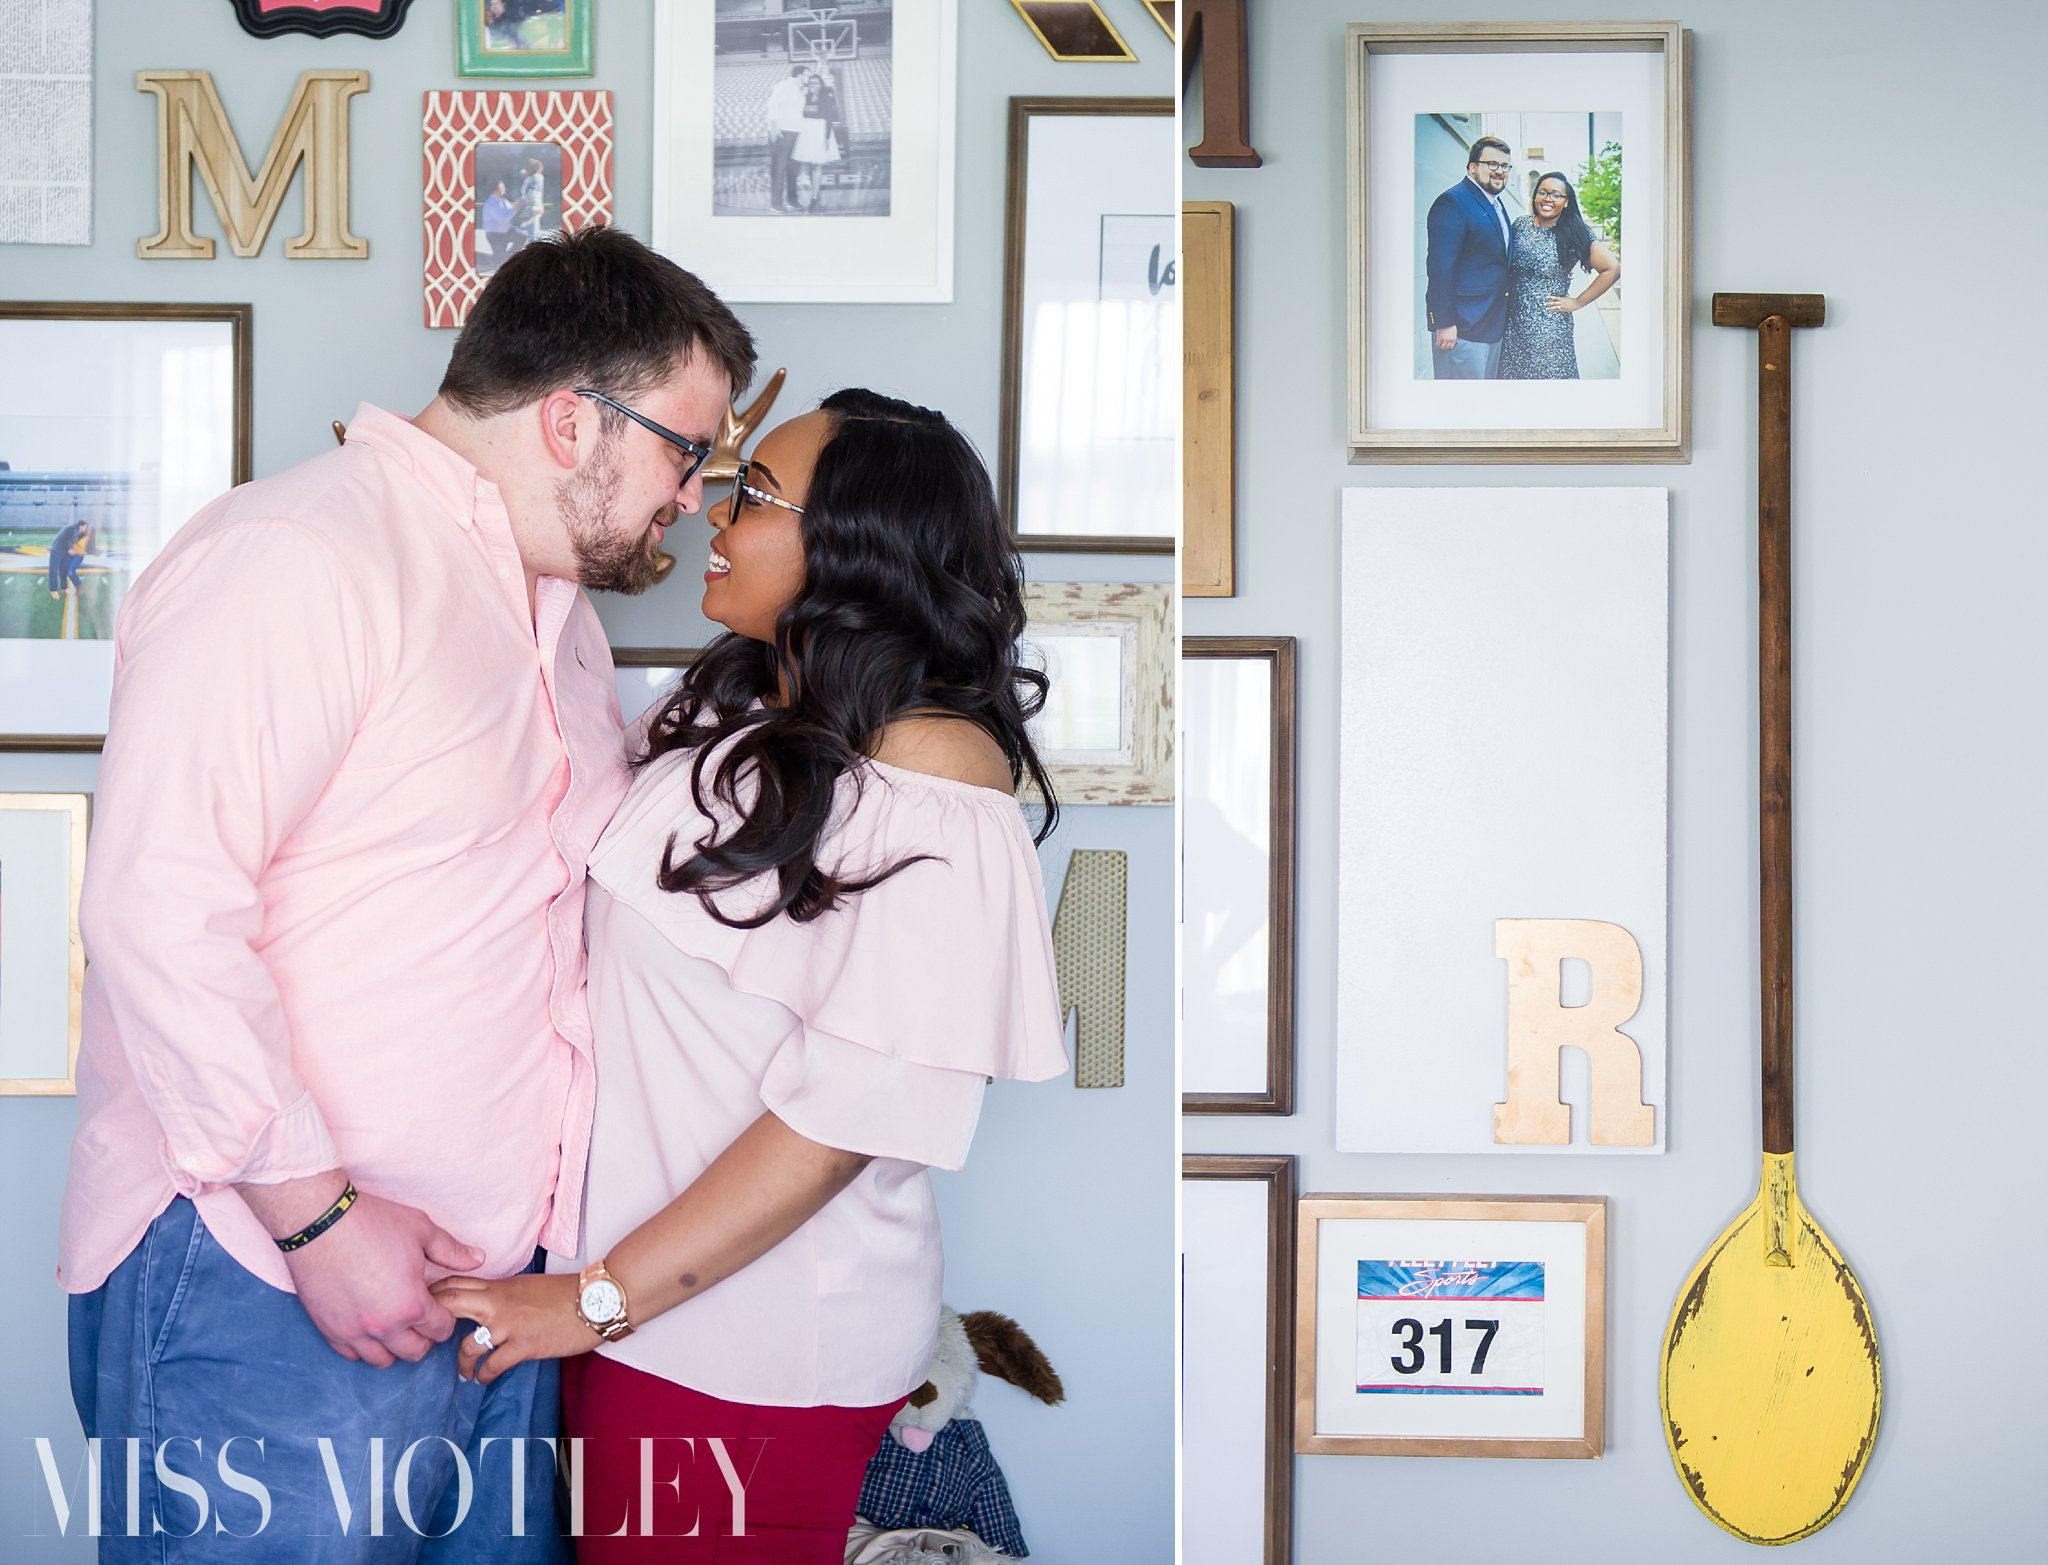 I fell in love with Ryan because he knew all of my flaws & weaknesses and still loved me. I noticed that when I was with him, I was a better me and I didn't want to ever live without the feeling I had when we were together. ~RaSheila